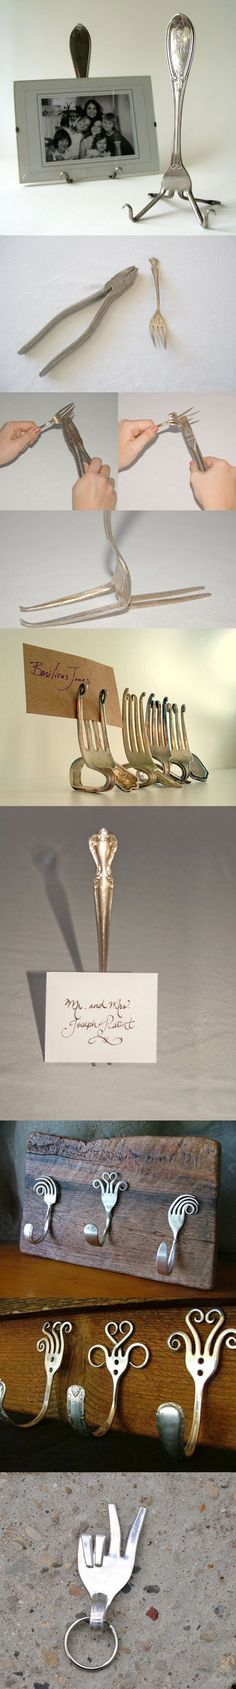 DIY: Forks! Cute!